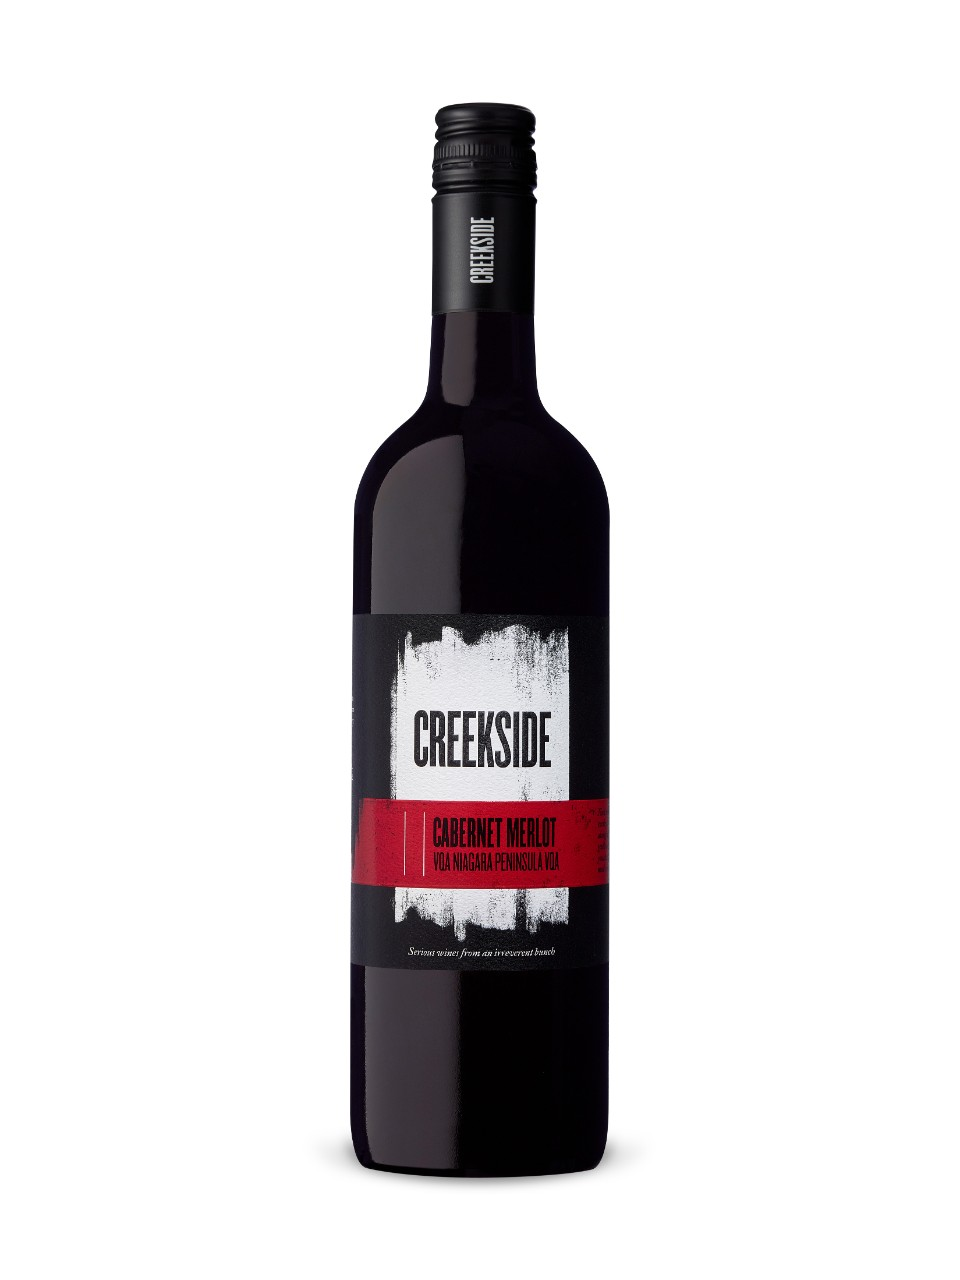 Creekside Cabernet Merlot VQA from LCBO